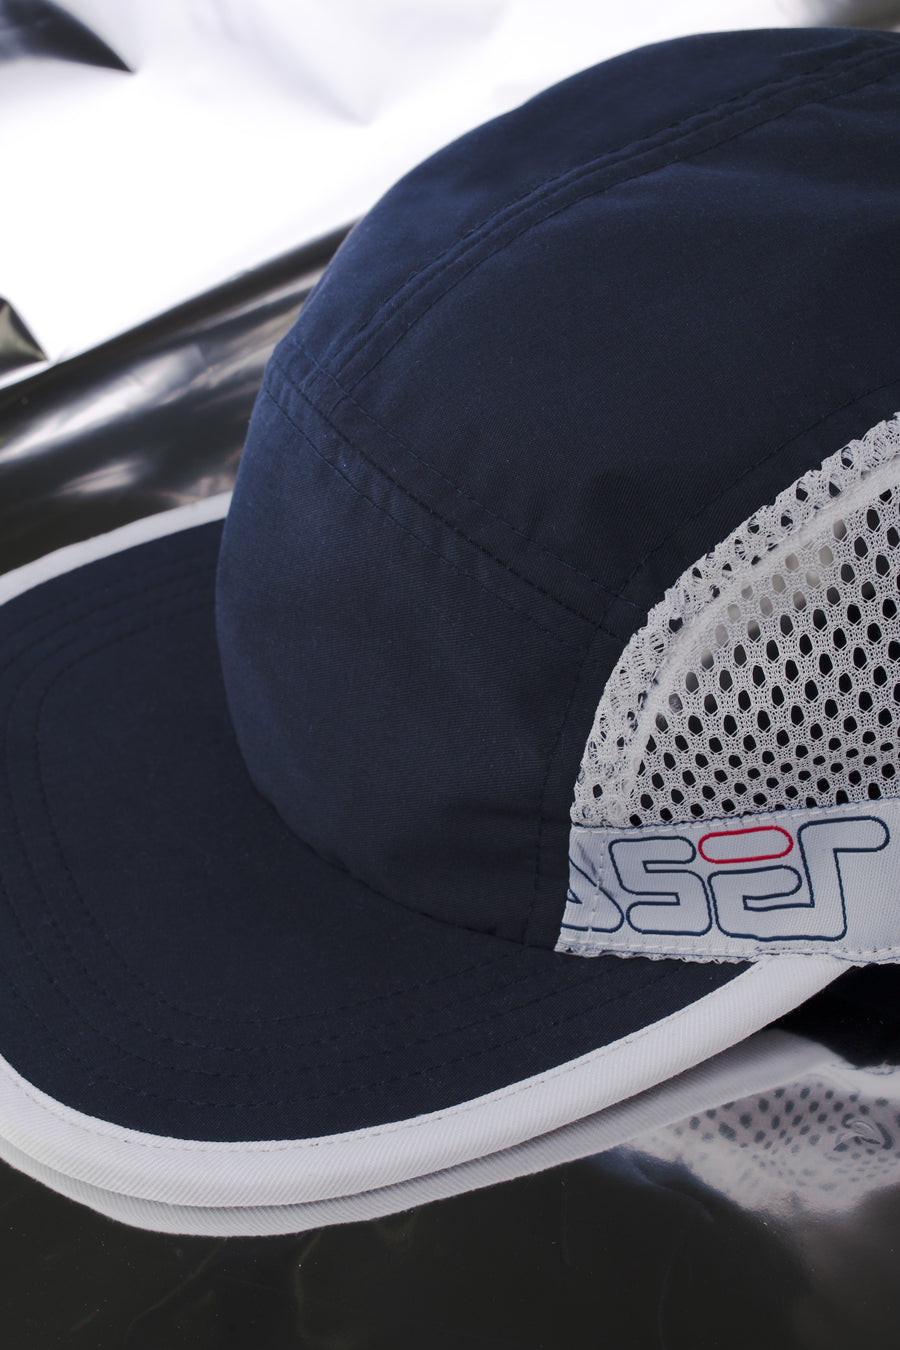 1993 TECH 5 PANEL HAT NAVY